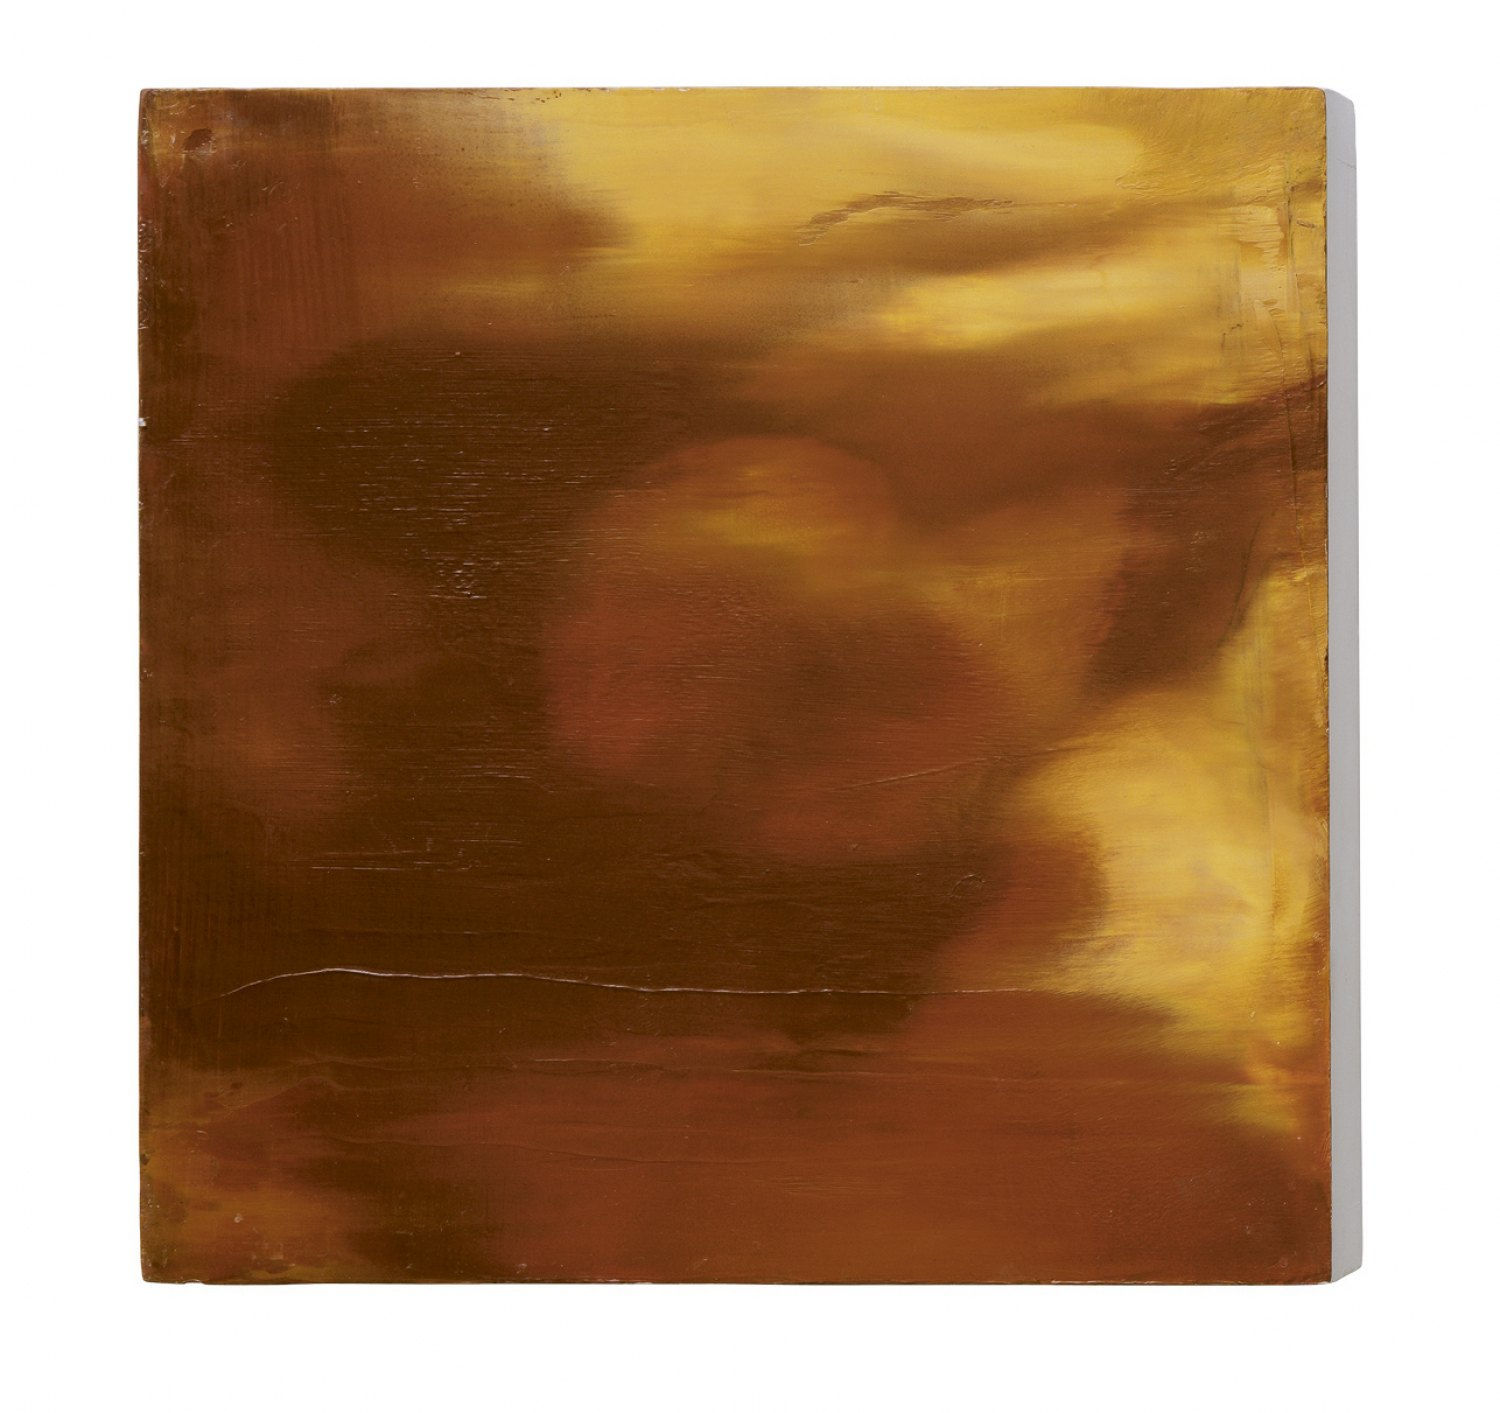 Ull Hohn Untitled, 1998 Oil and varnish on wood, 35.56 × 35.56 × 5.08 cm